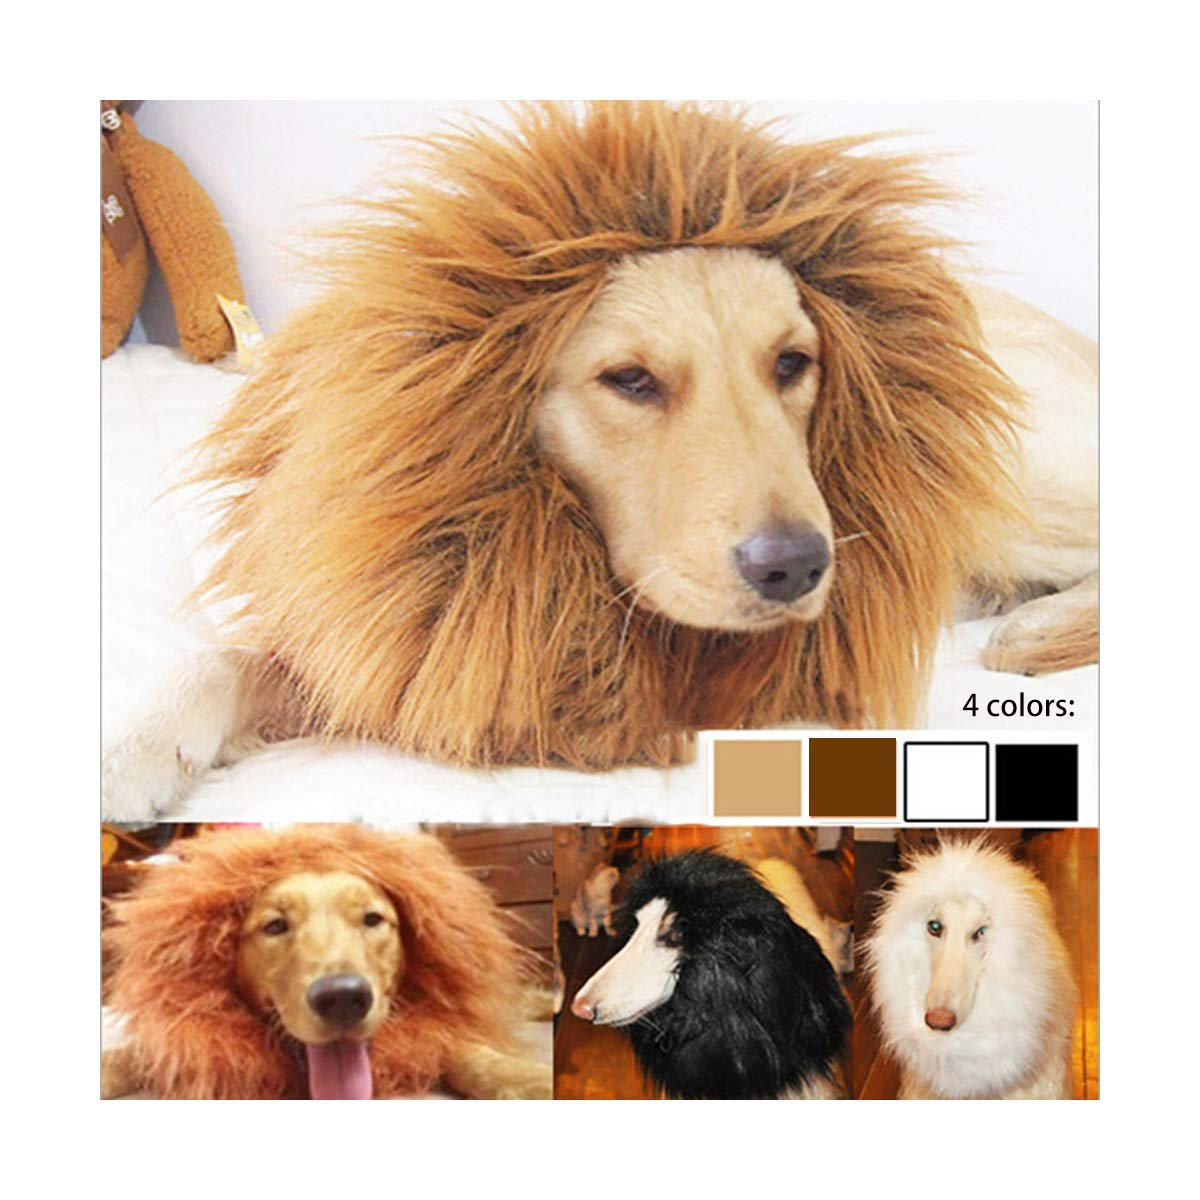 Amazon.com: New Pet Costume Lion Mane Wig For Dogs Easter Halloween Clothes Festival Fancy Dress Up: Kitchen & Dining